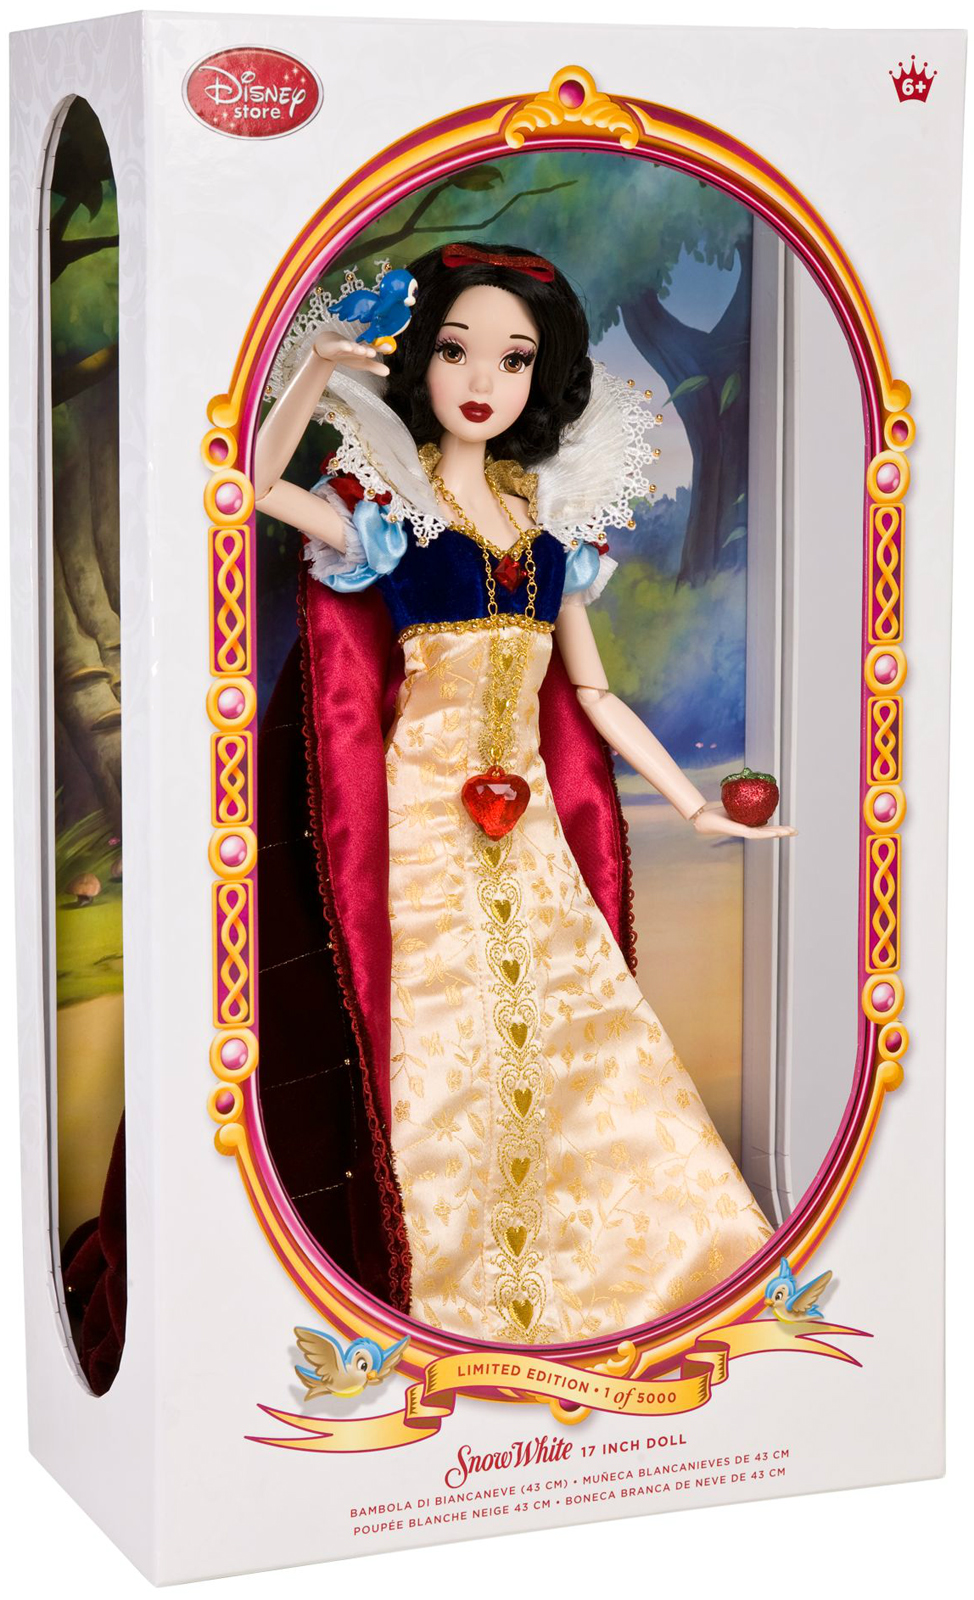 Jessica rabbit special edition doll by disney collectors dolls dark - 2009 Deluxe 17 Snow White Doll